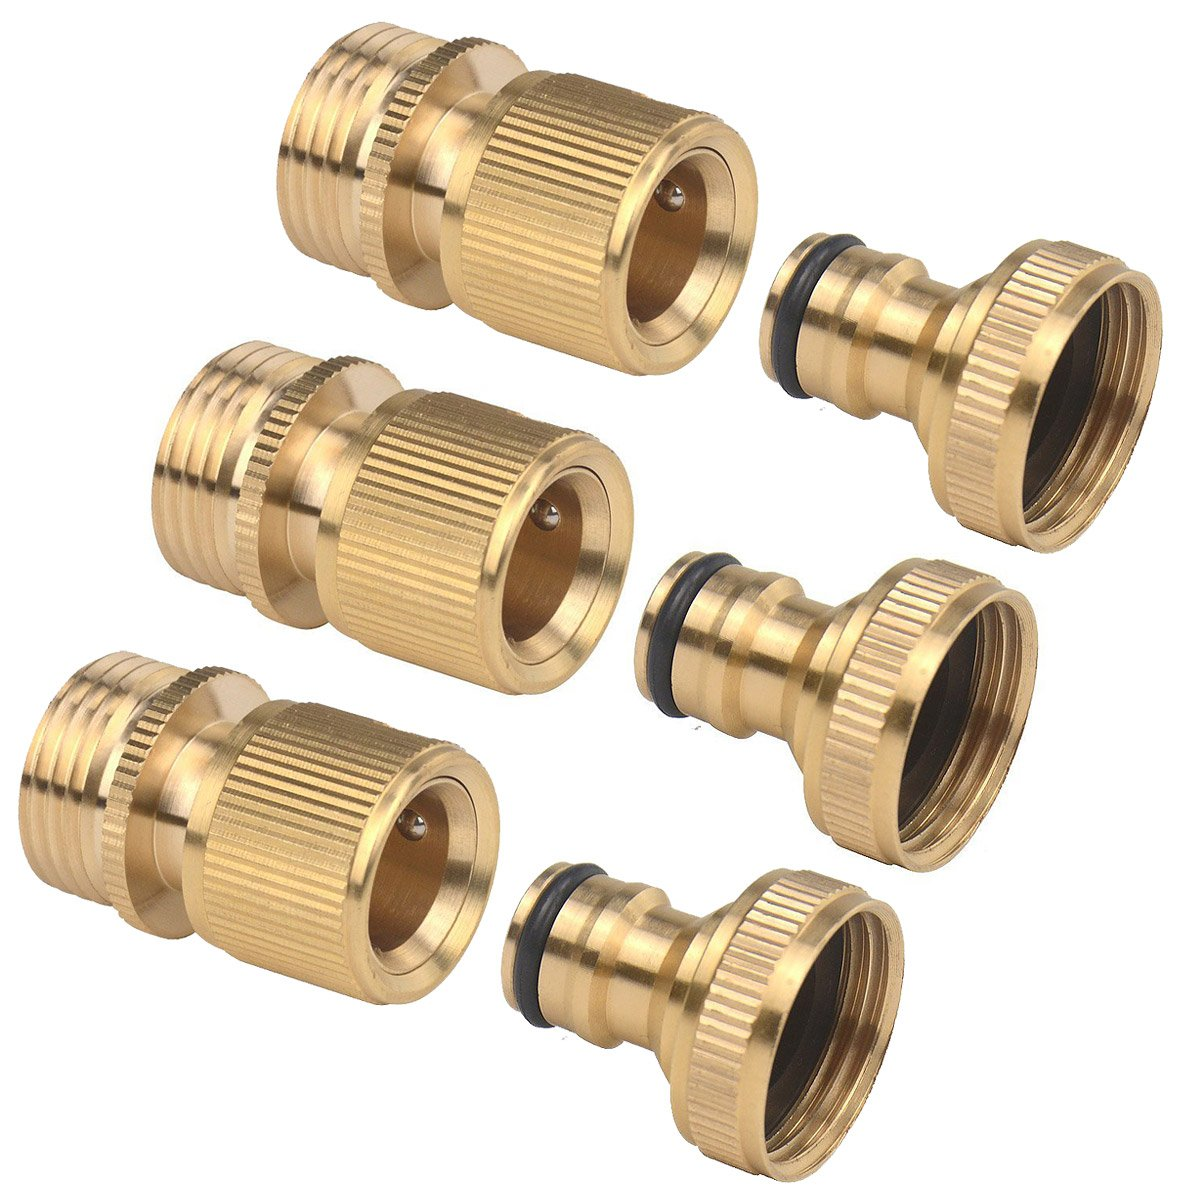 3Sets of Brass Male and Female 3/4 Inch Garden Hose End and Quick Connectors